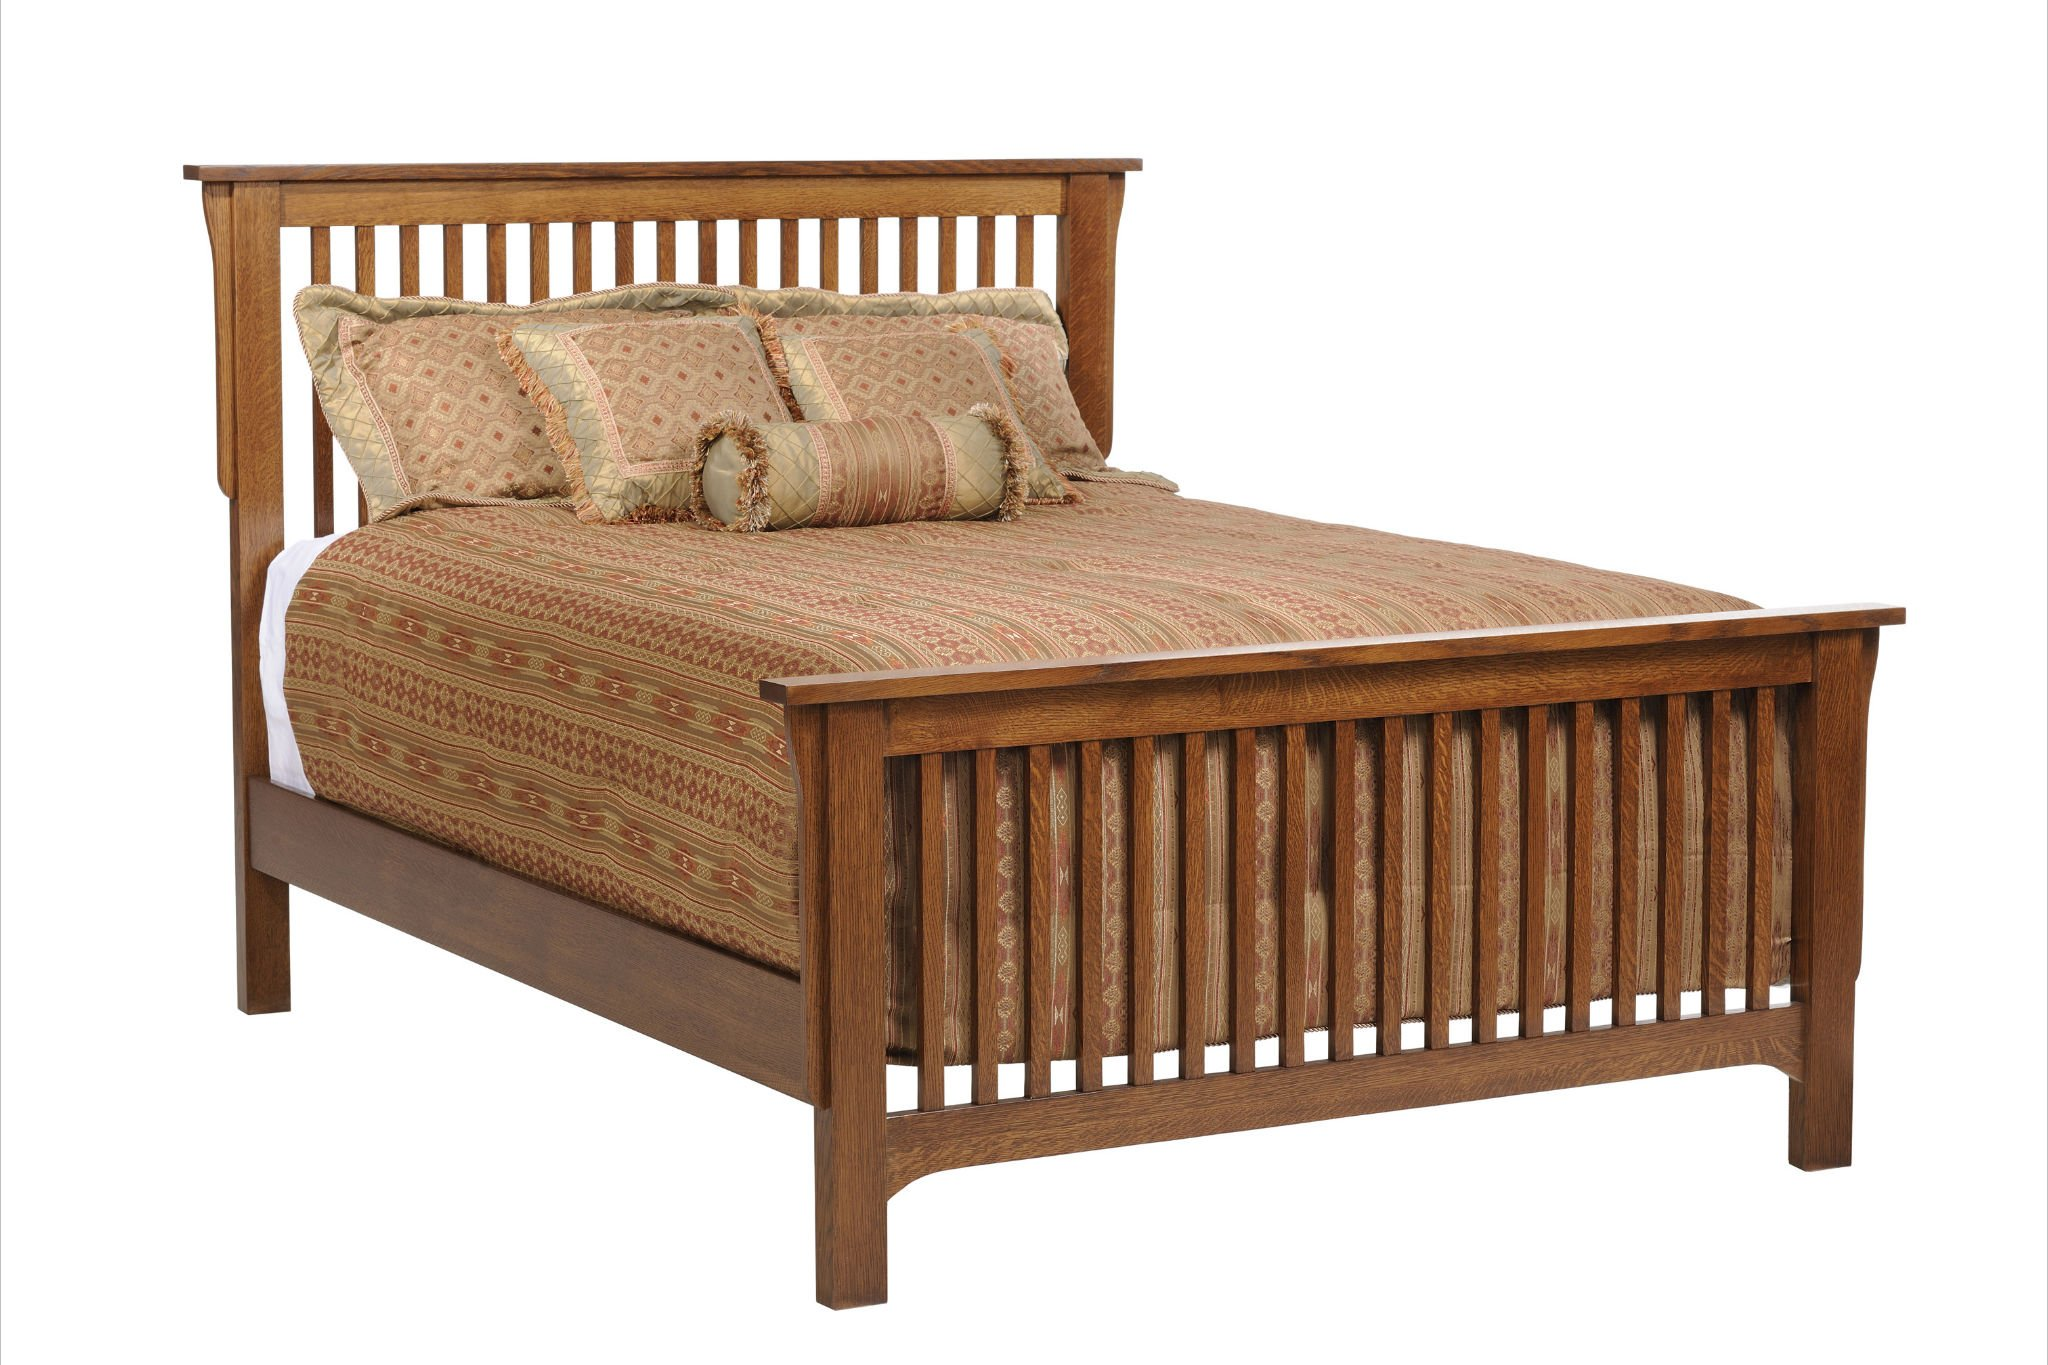 Bedroom Mission Furniture Rochester NY | Jack Greco